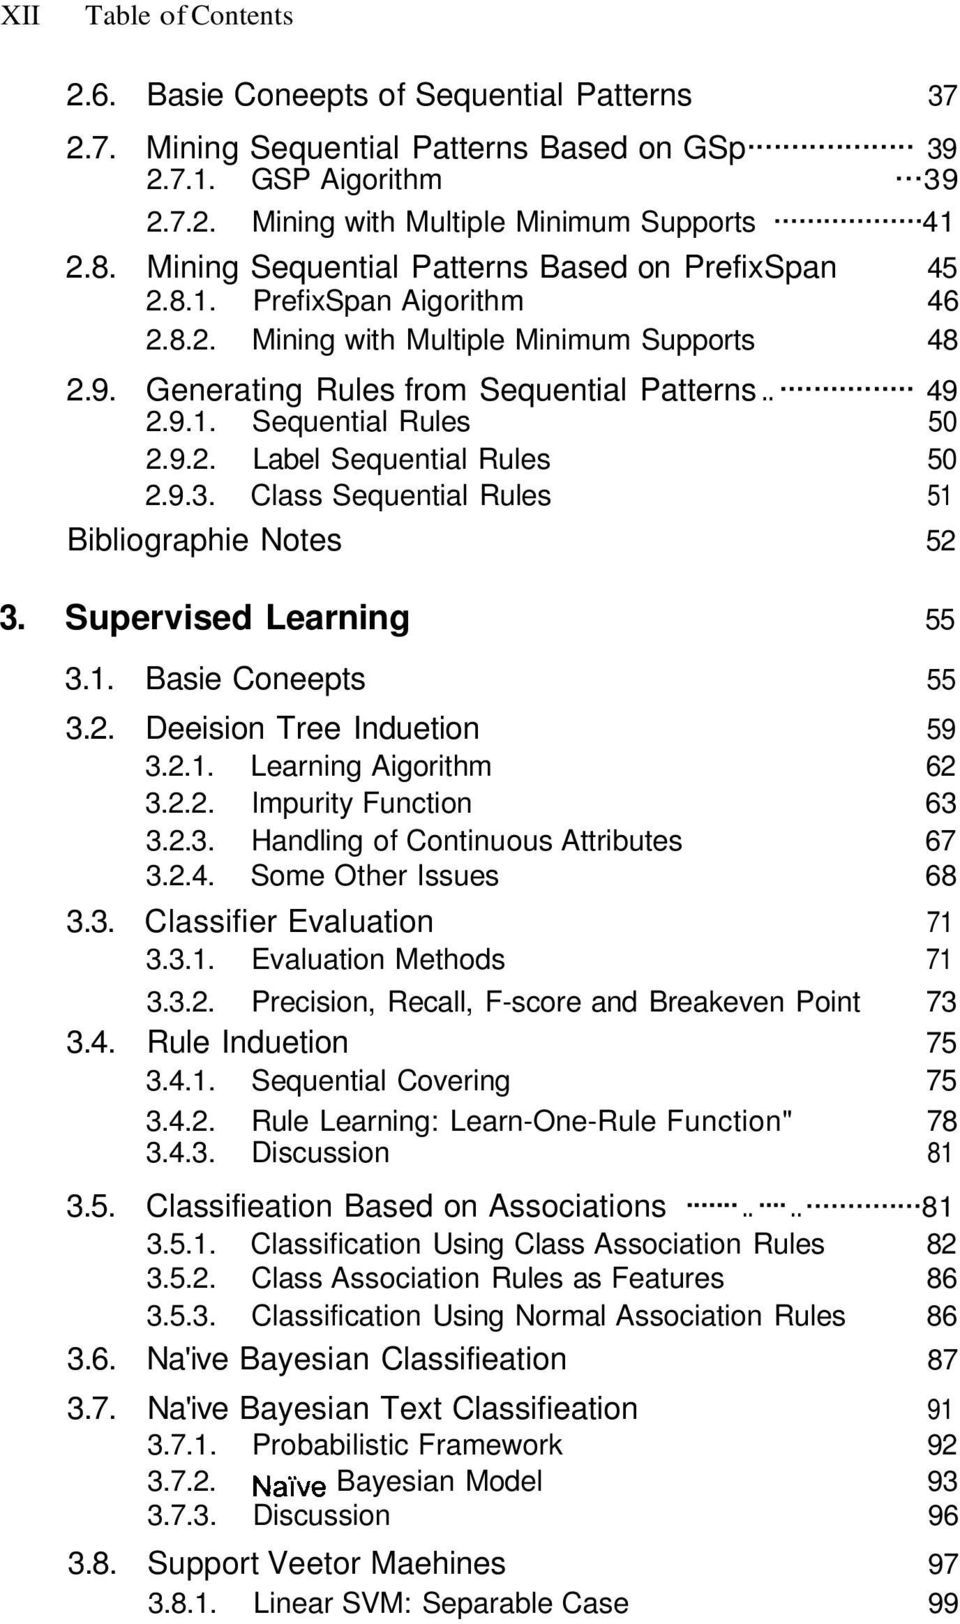 9.2. Label Sequential Rules 50 2.9.3. Class Sequential Rules 51 Bibliographie Notes 52 3. Supervised Learning 55 3.1. Basie Coneepts 55 3.2. Deeision Tree Induetion 59 3.2.1. Learning Aigorithm 62 3.